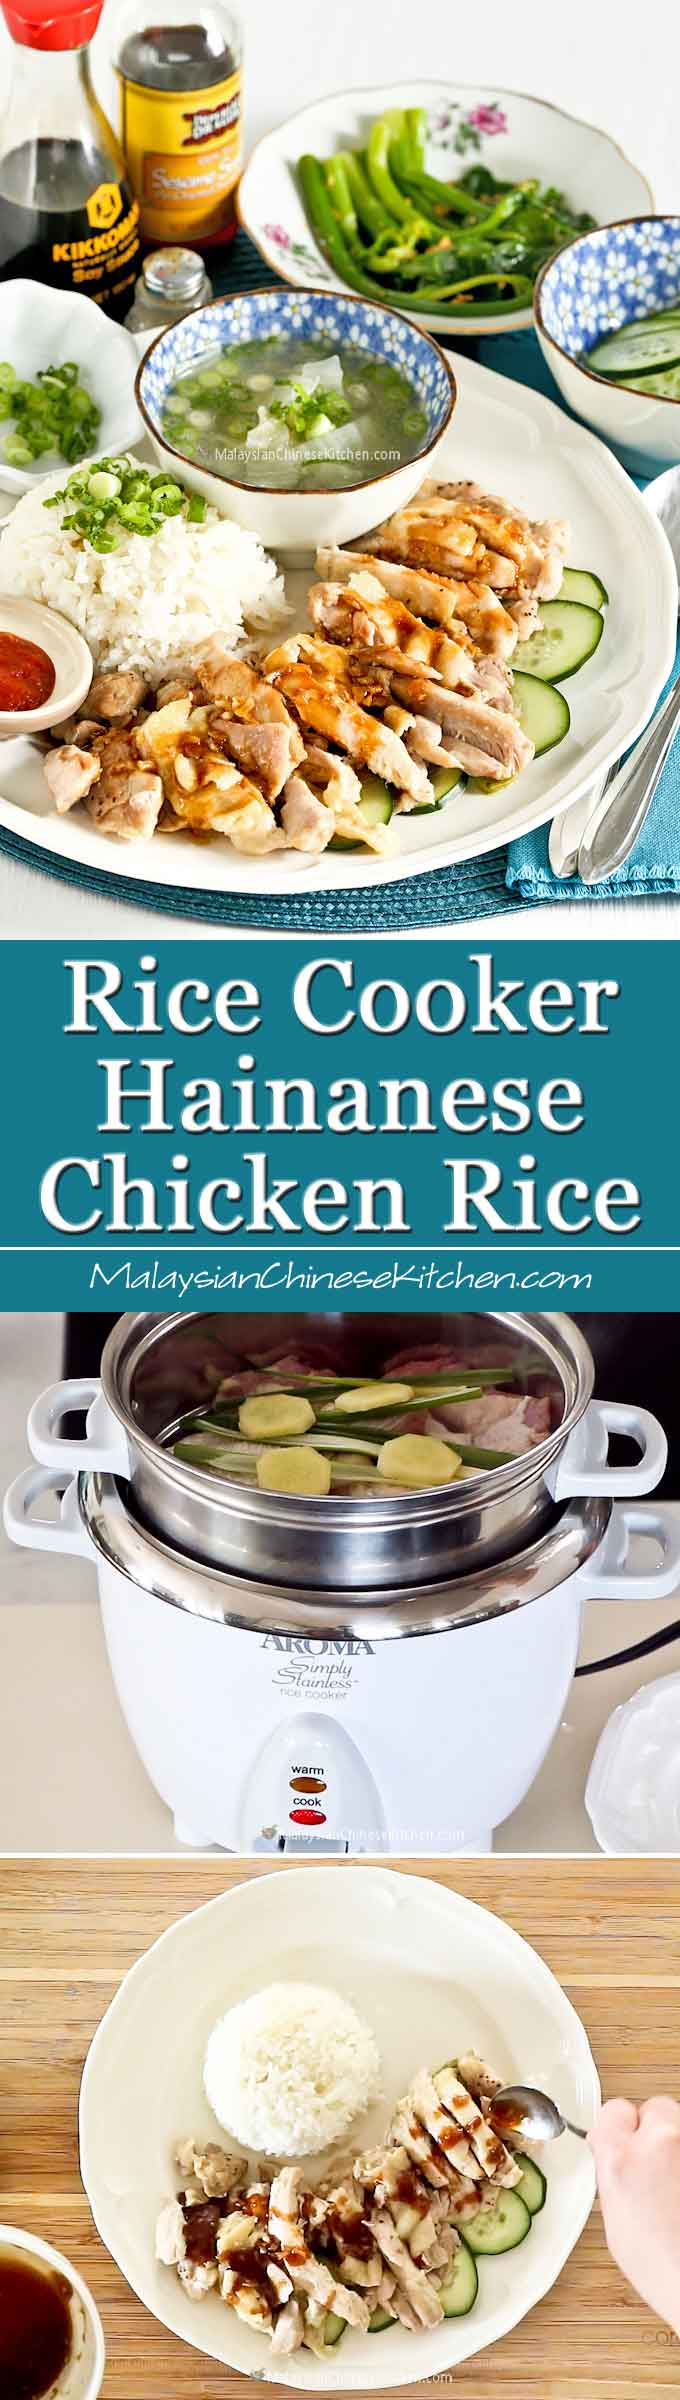 Rice Cooker Hainanese Chicken Rice Dine Solo Episode 5 Malaysian Chinese Kitchen